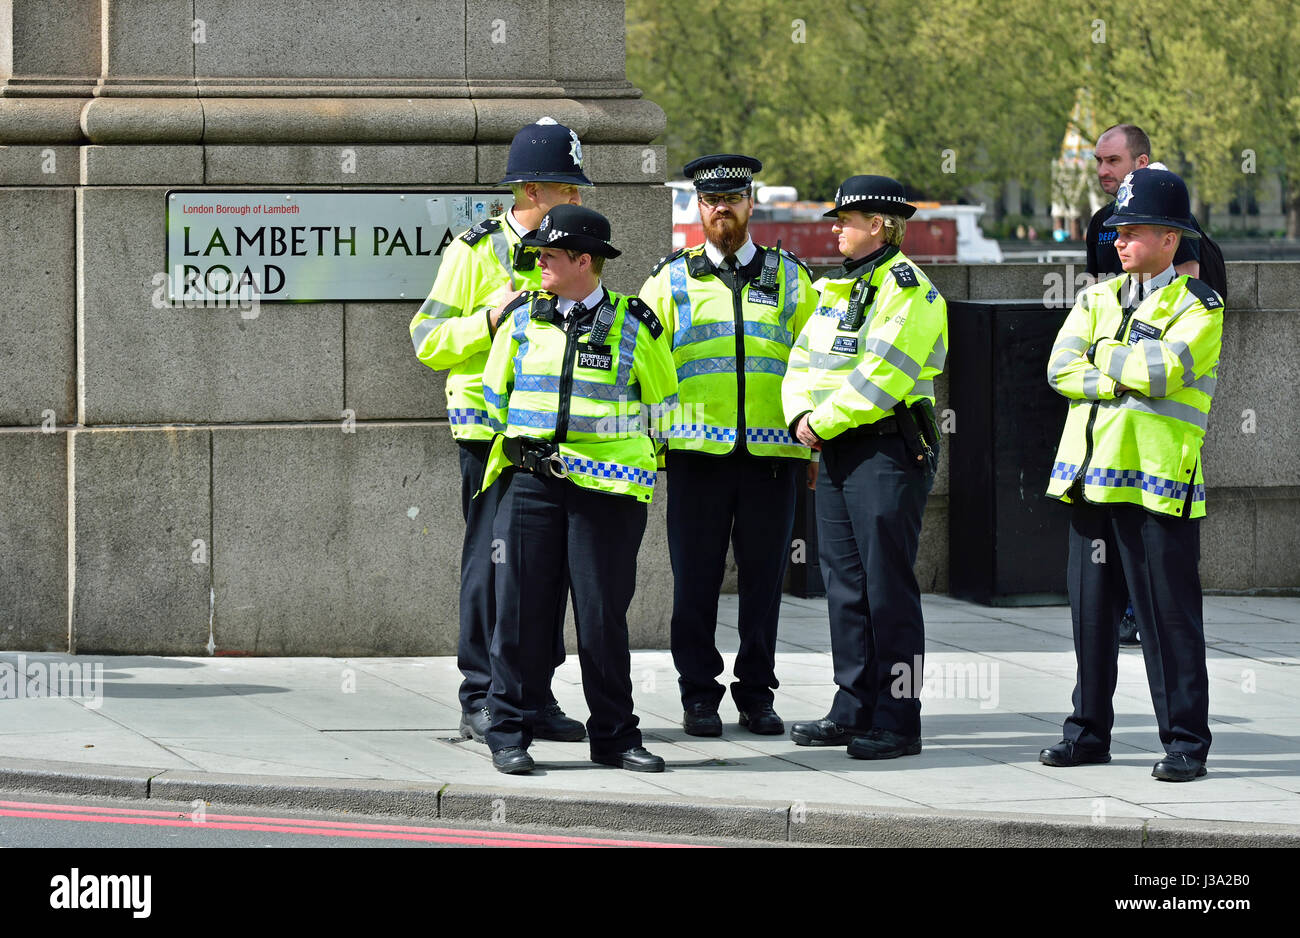 London, England, UK. Police officers on Lambeth Bridge - Stock Image